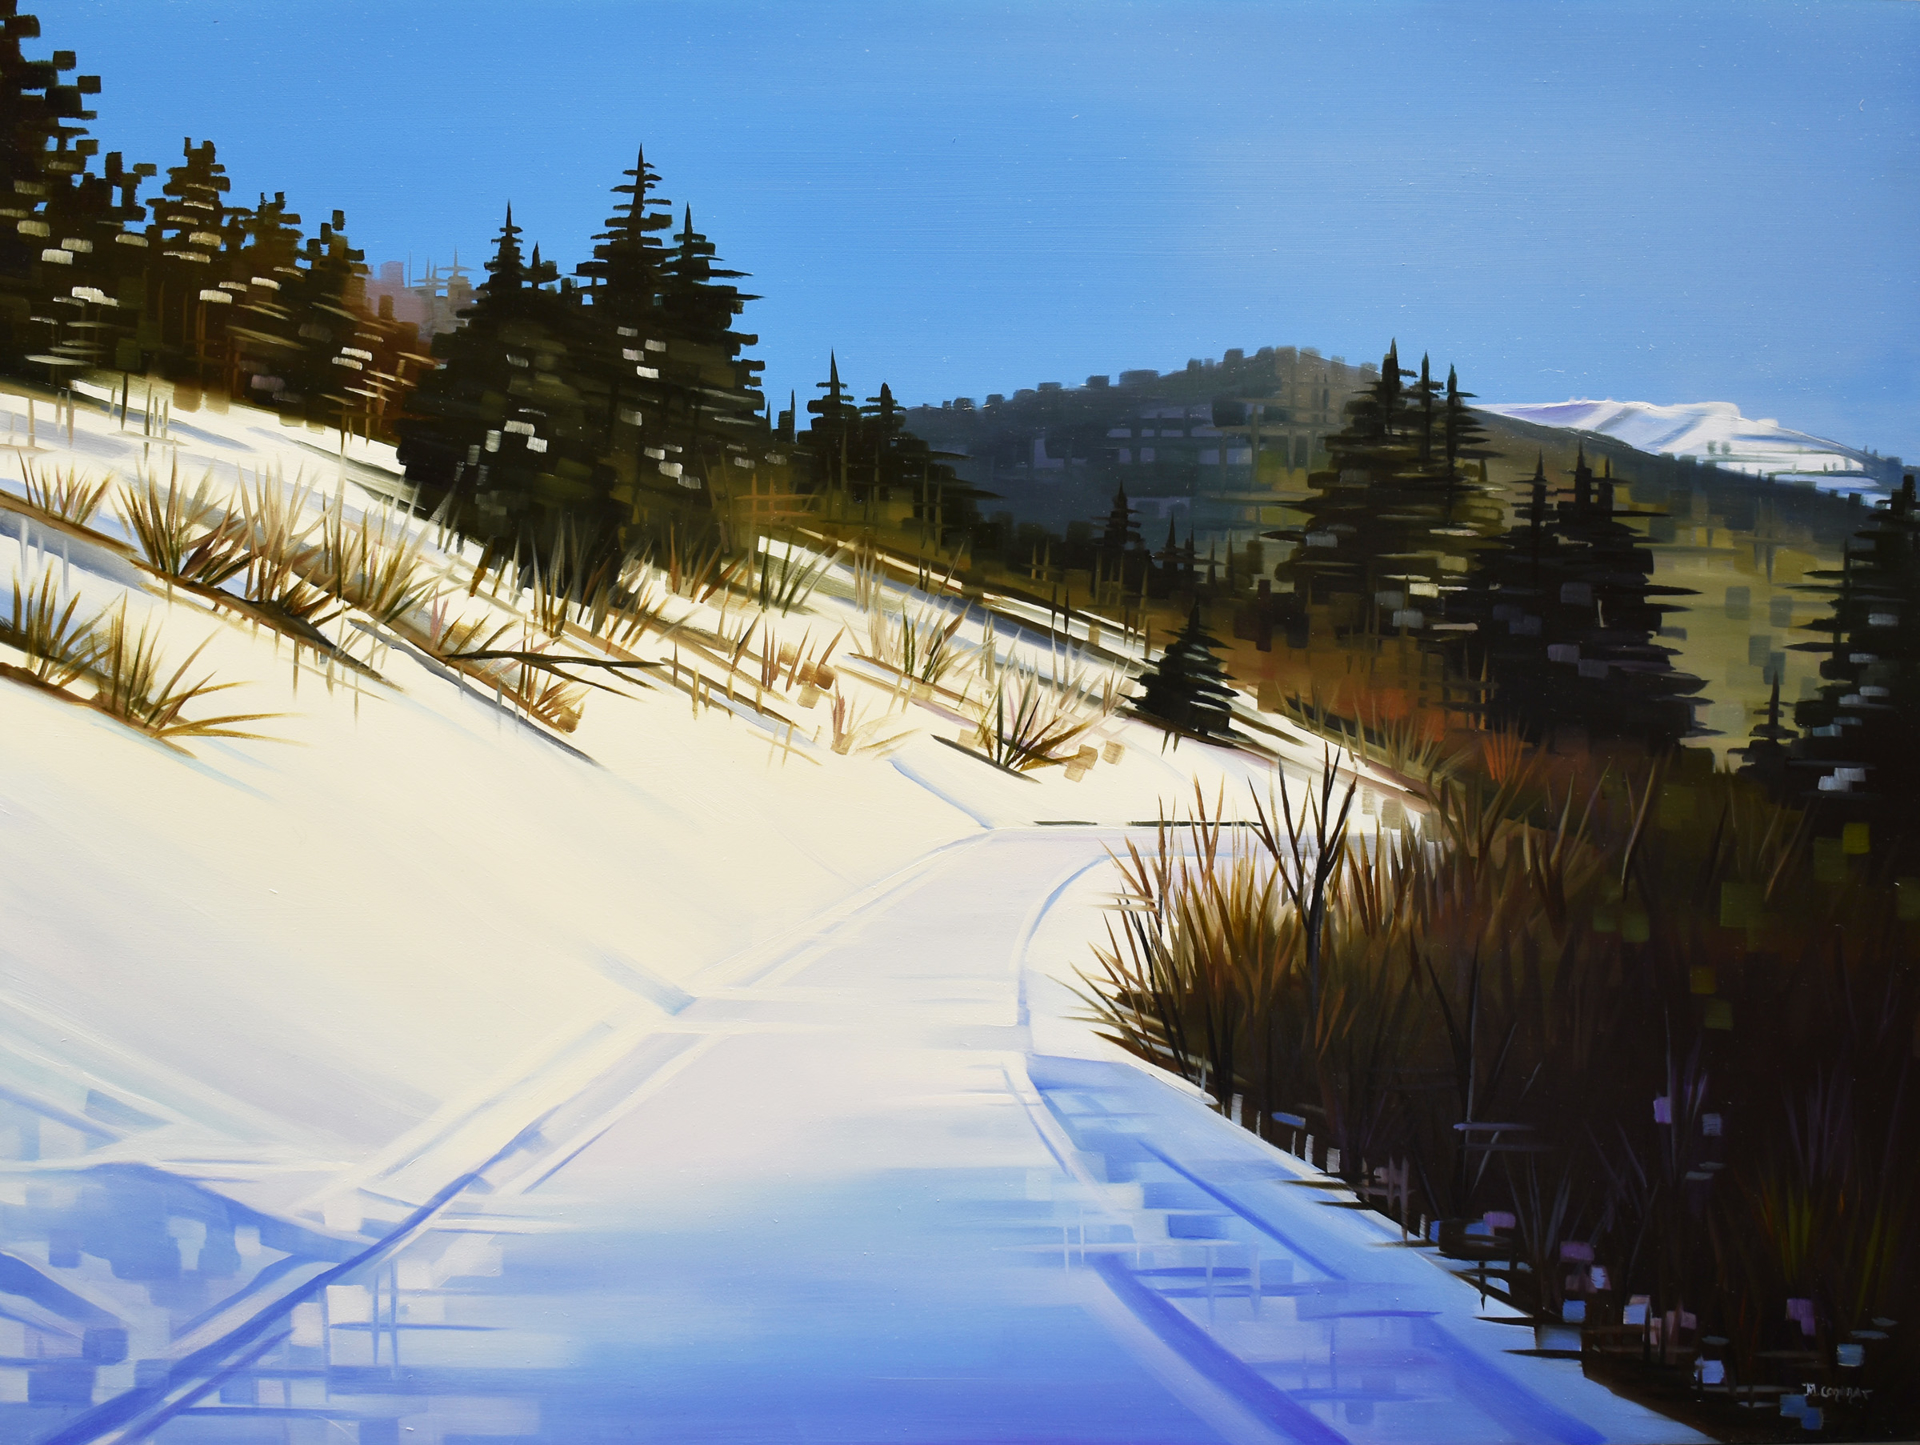 Landscape Oil painting by Michelle Condrat | Title: Winter Journey | Year created: 2020 | Medium Oil on panel Size: 8 x 24 in Price: $3,200.00